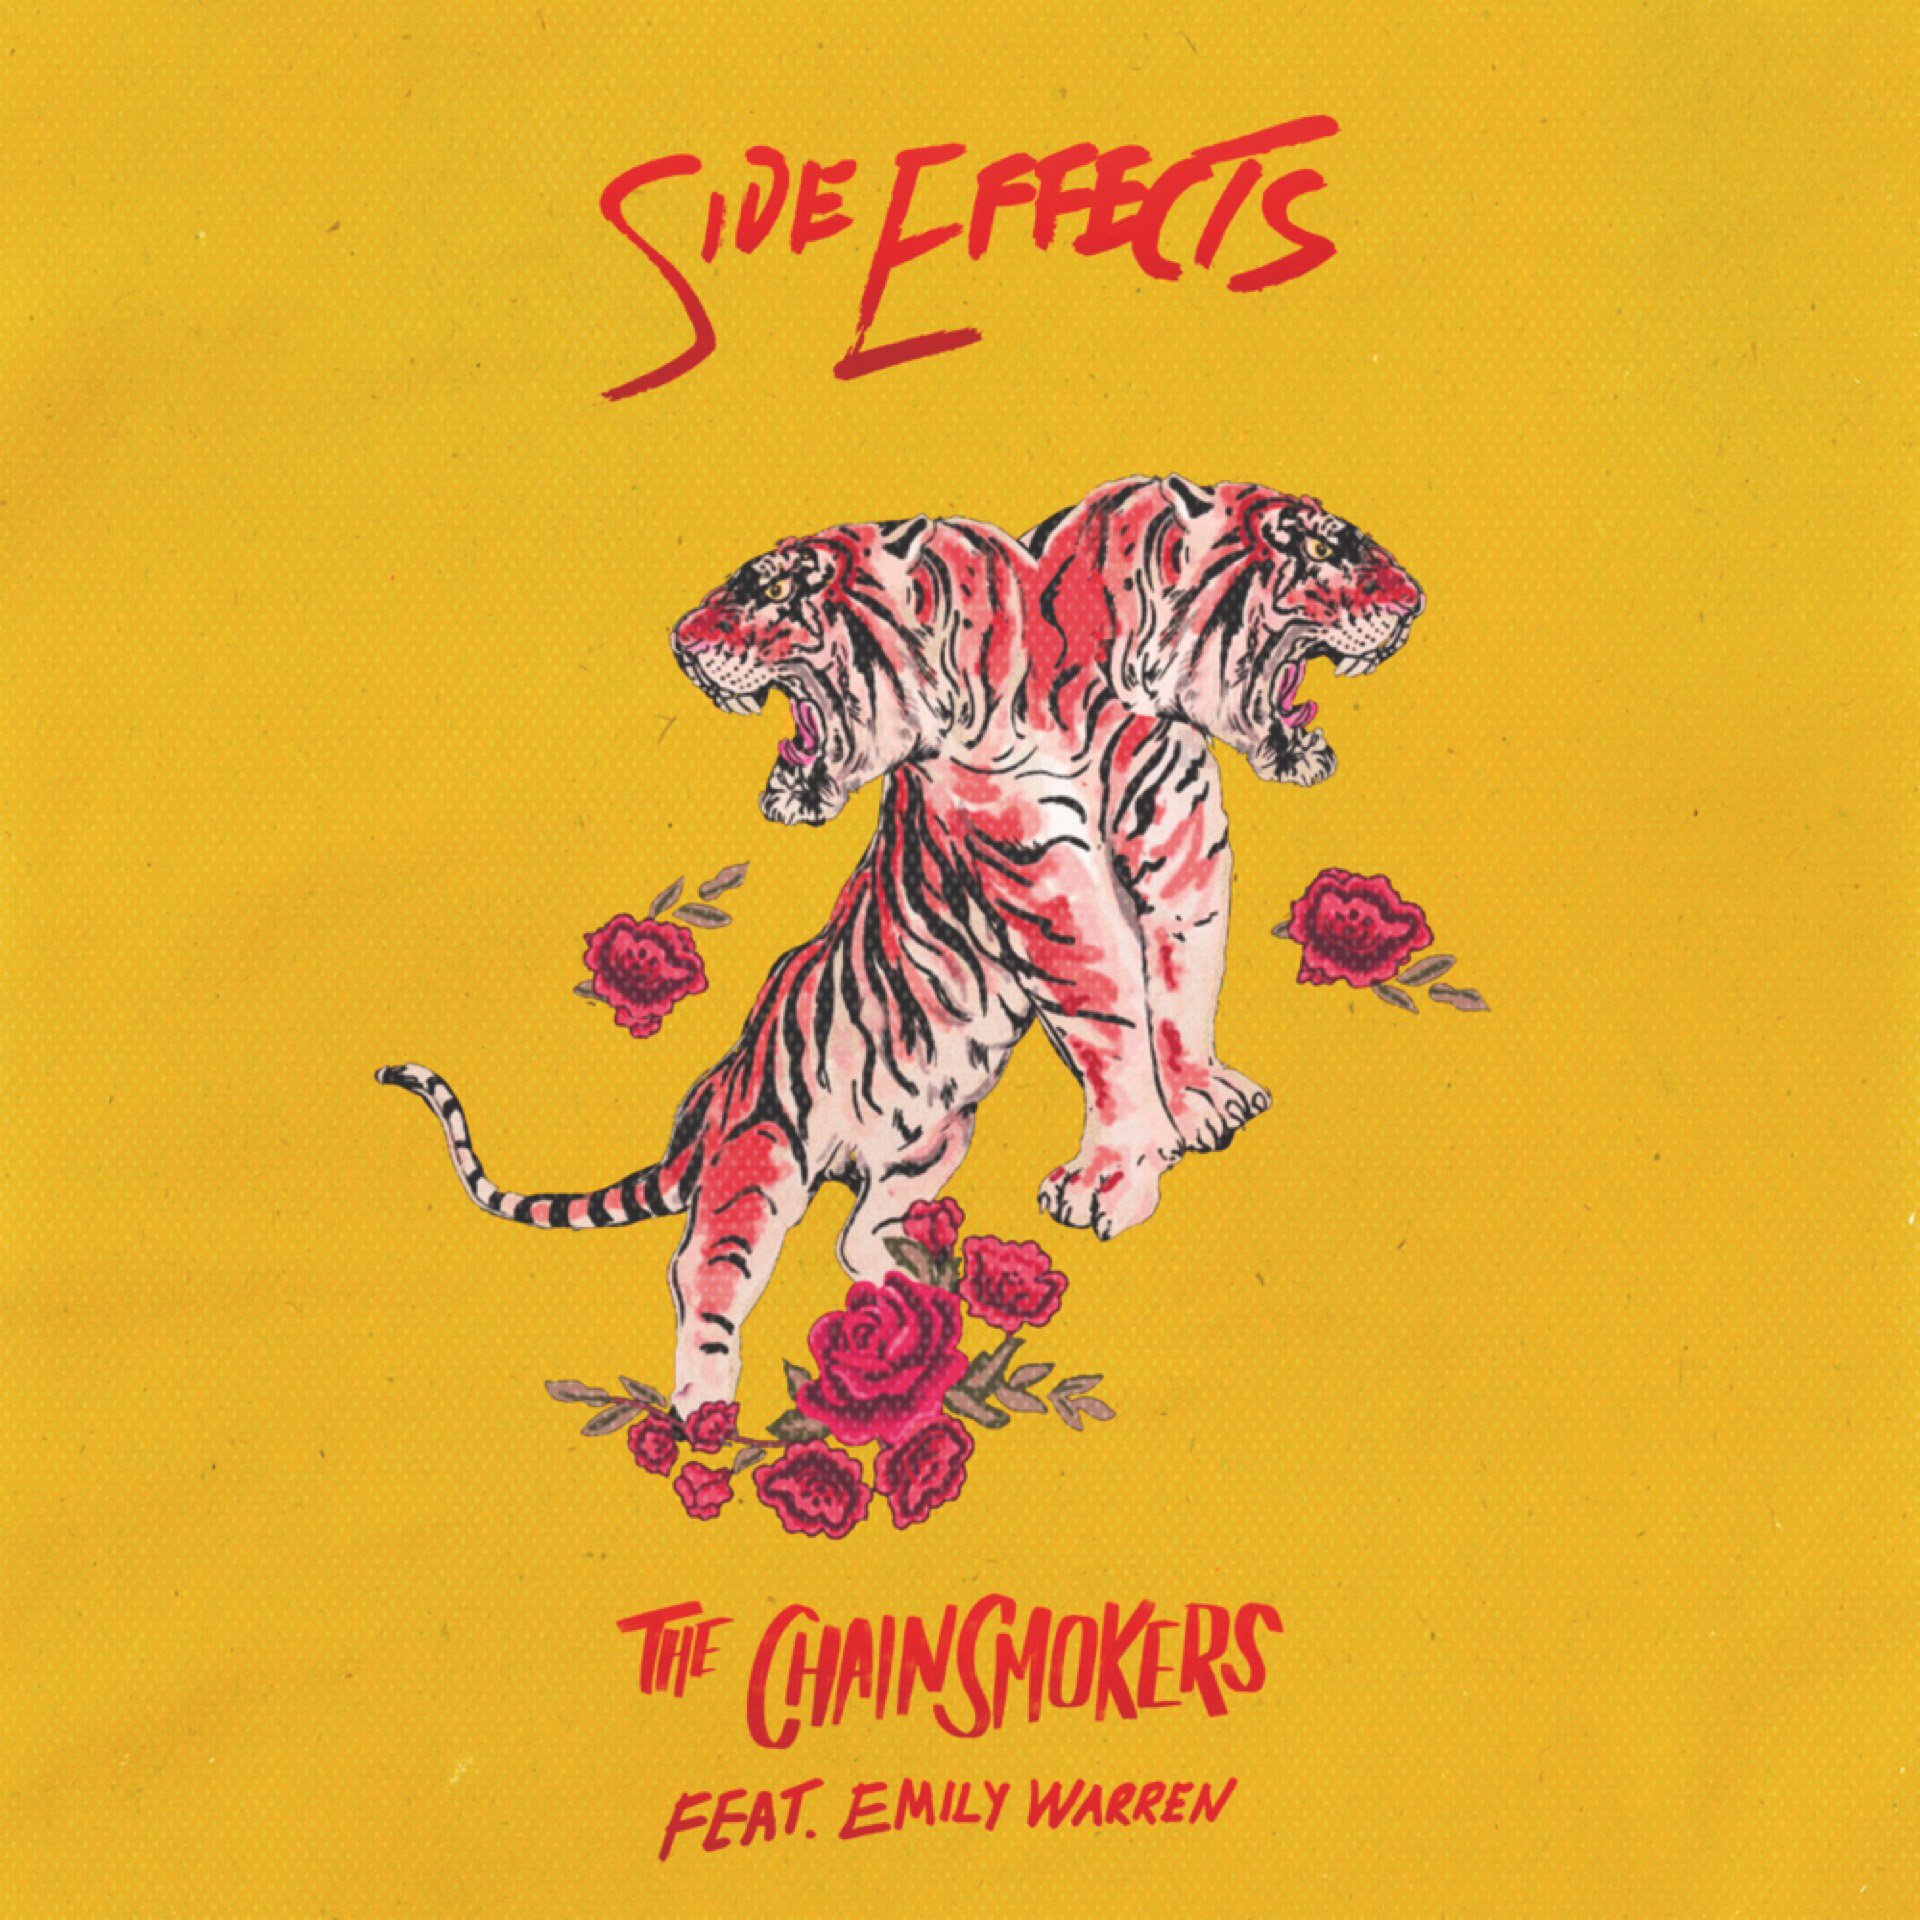 SIDE EFFECTS; THE CHAINSMOKERS